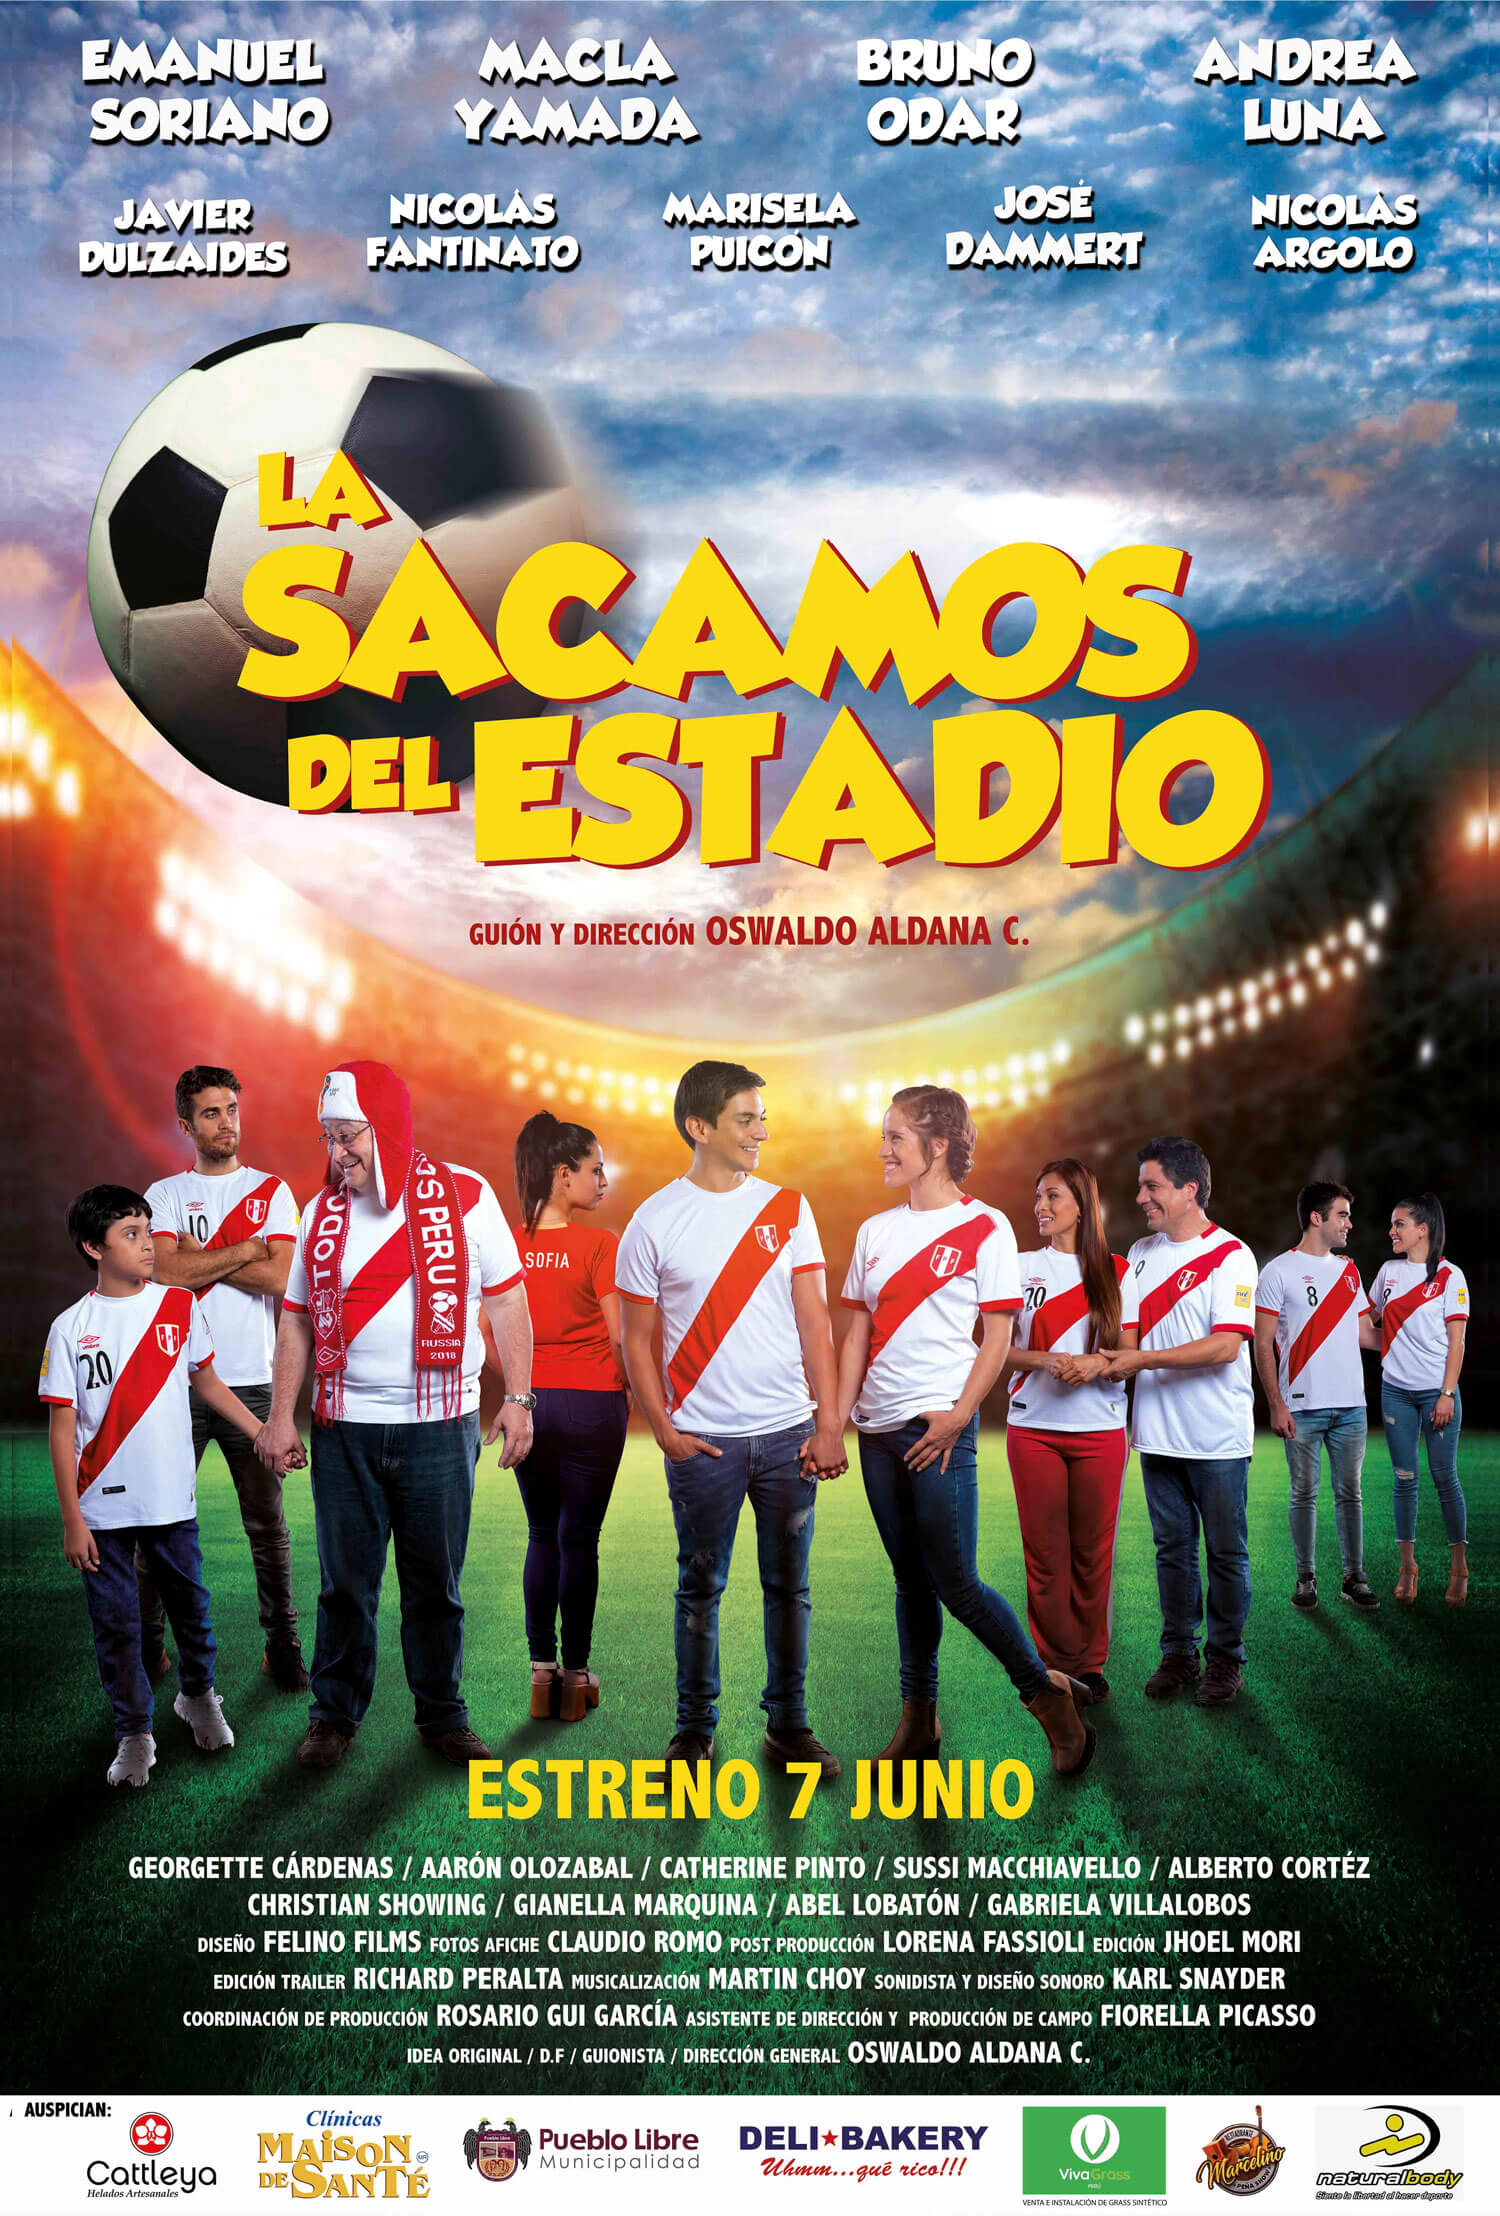 https://www.andesfilms.com.pe/la-sacamos-del-estadio/